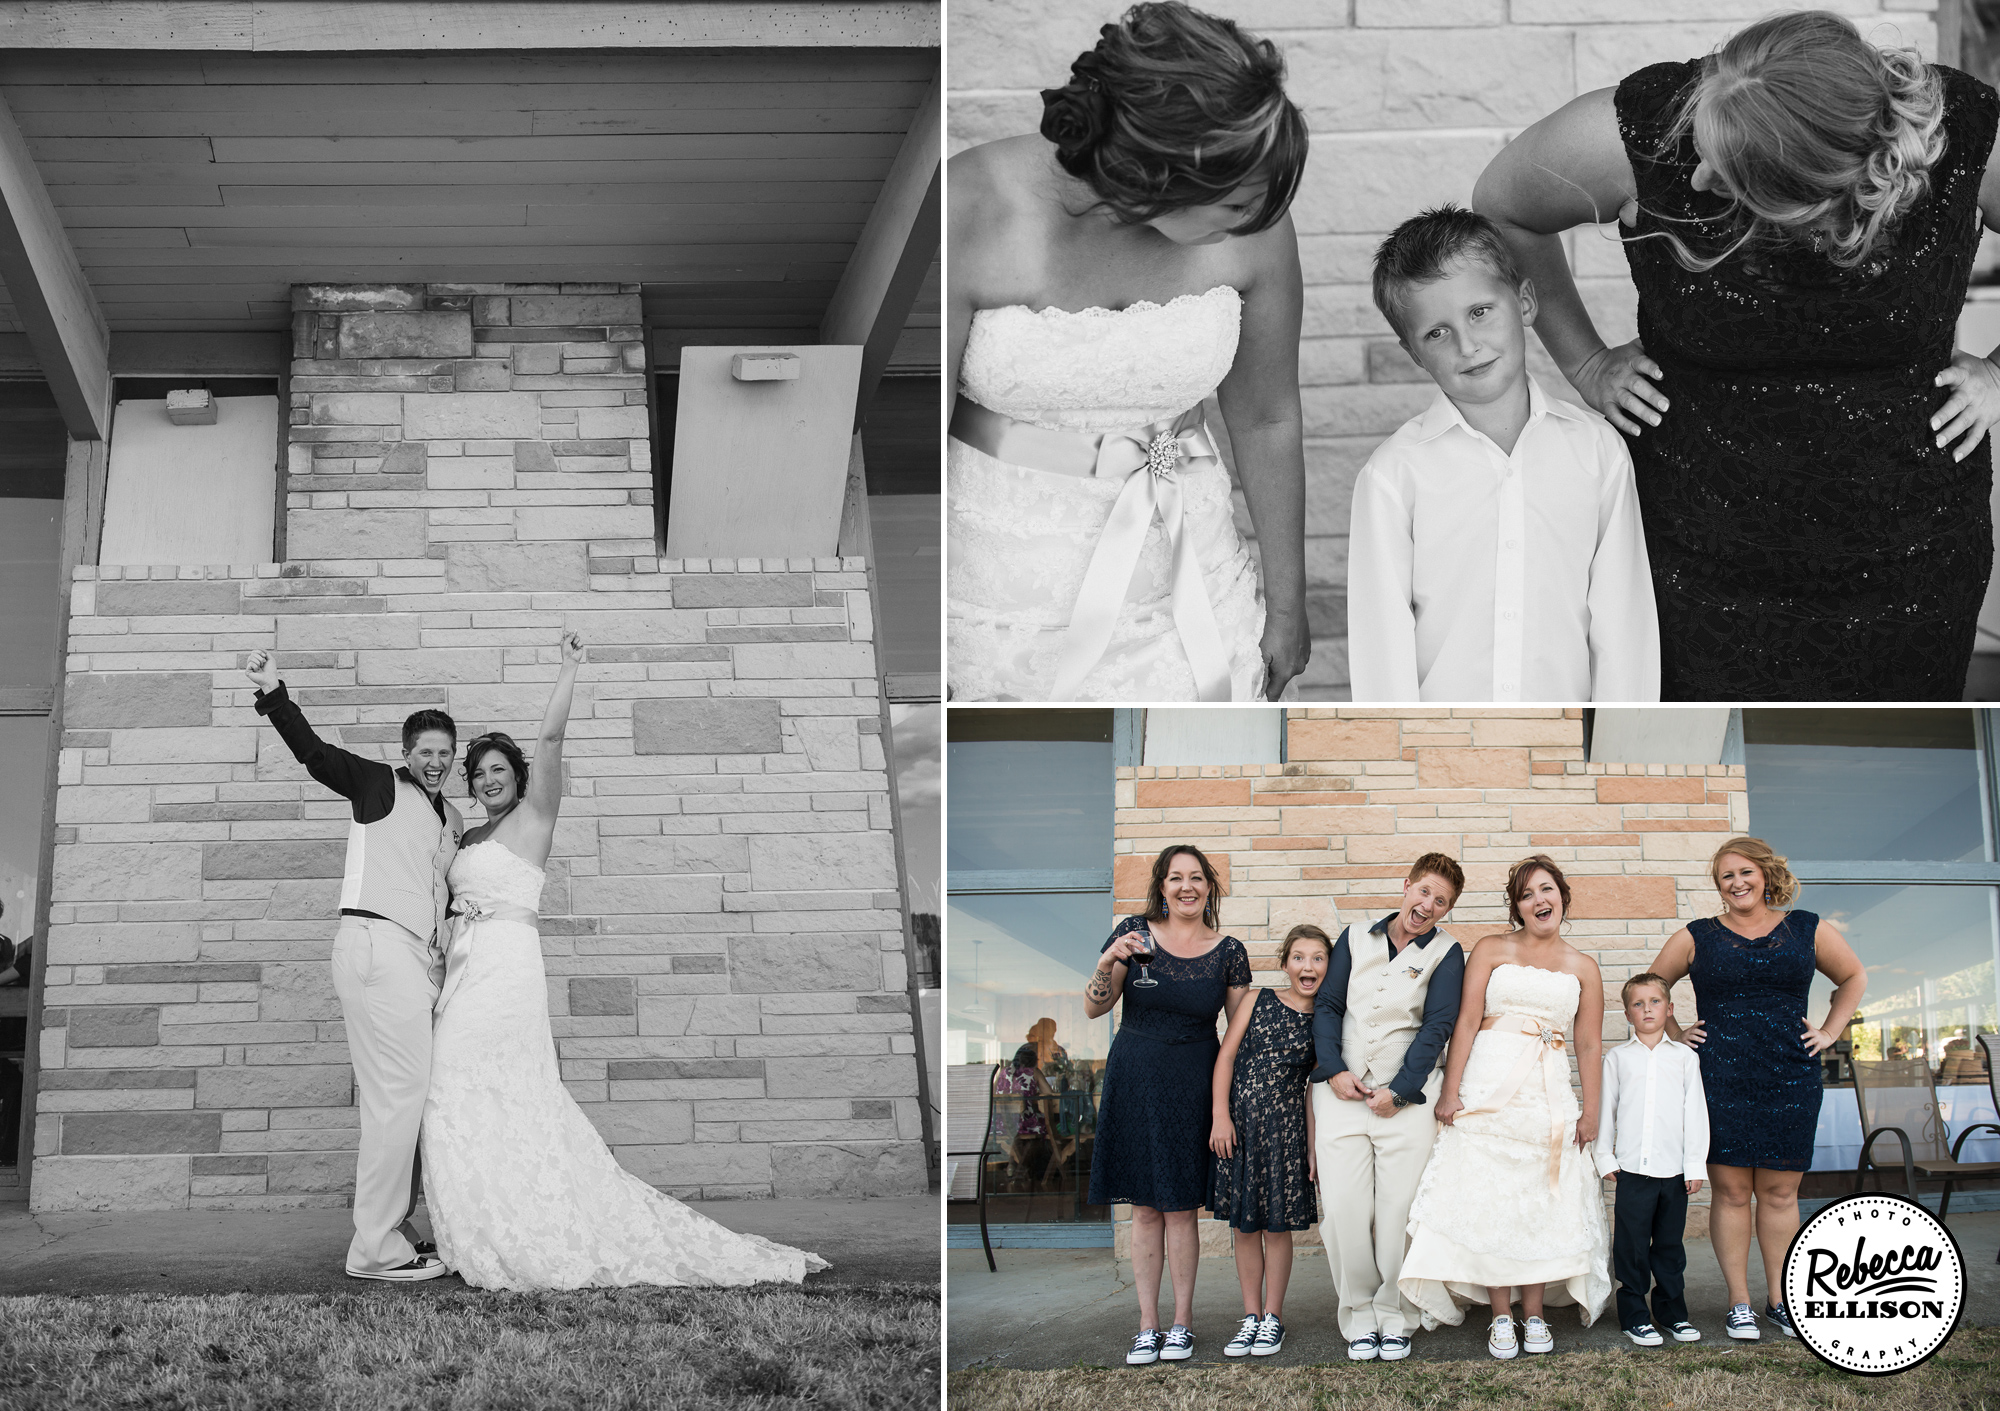 Outdoor wedding party portraits in front of a brick wall at the Hoodsport Beach Club photographed by Seattle wedding photographer Rebecca Ellison